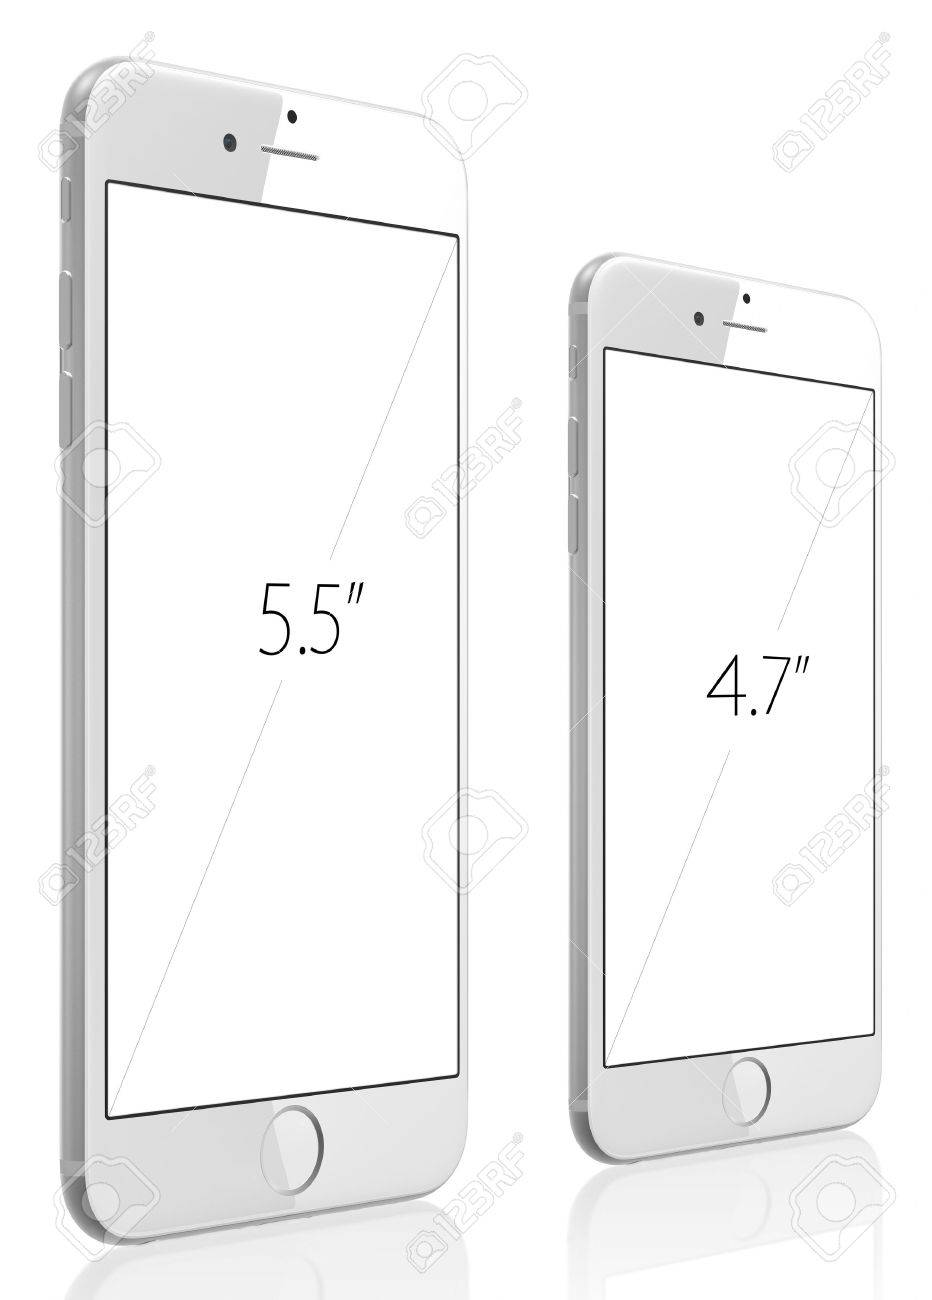 Apple Silver iPhone 6 Plus and iPhone 6 witn blank screen The